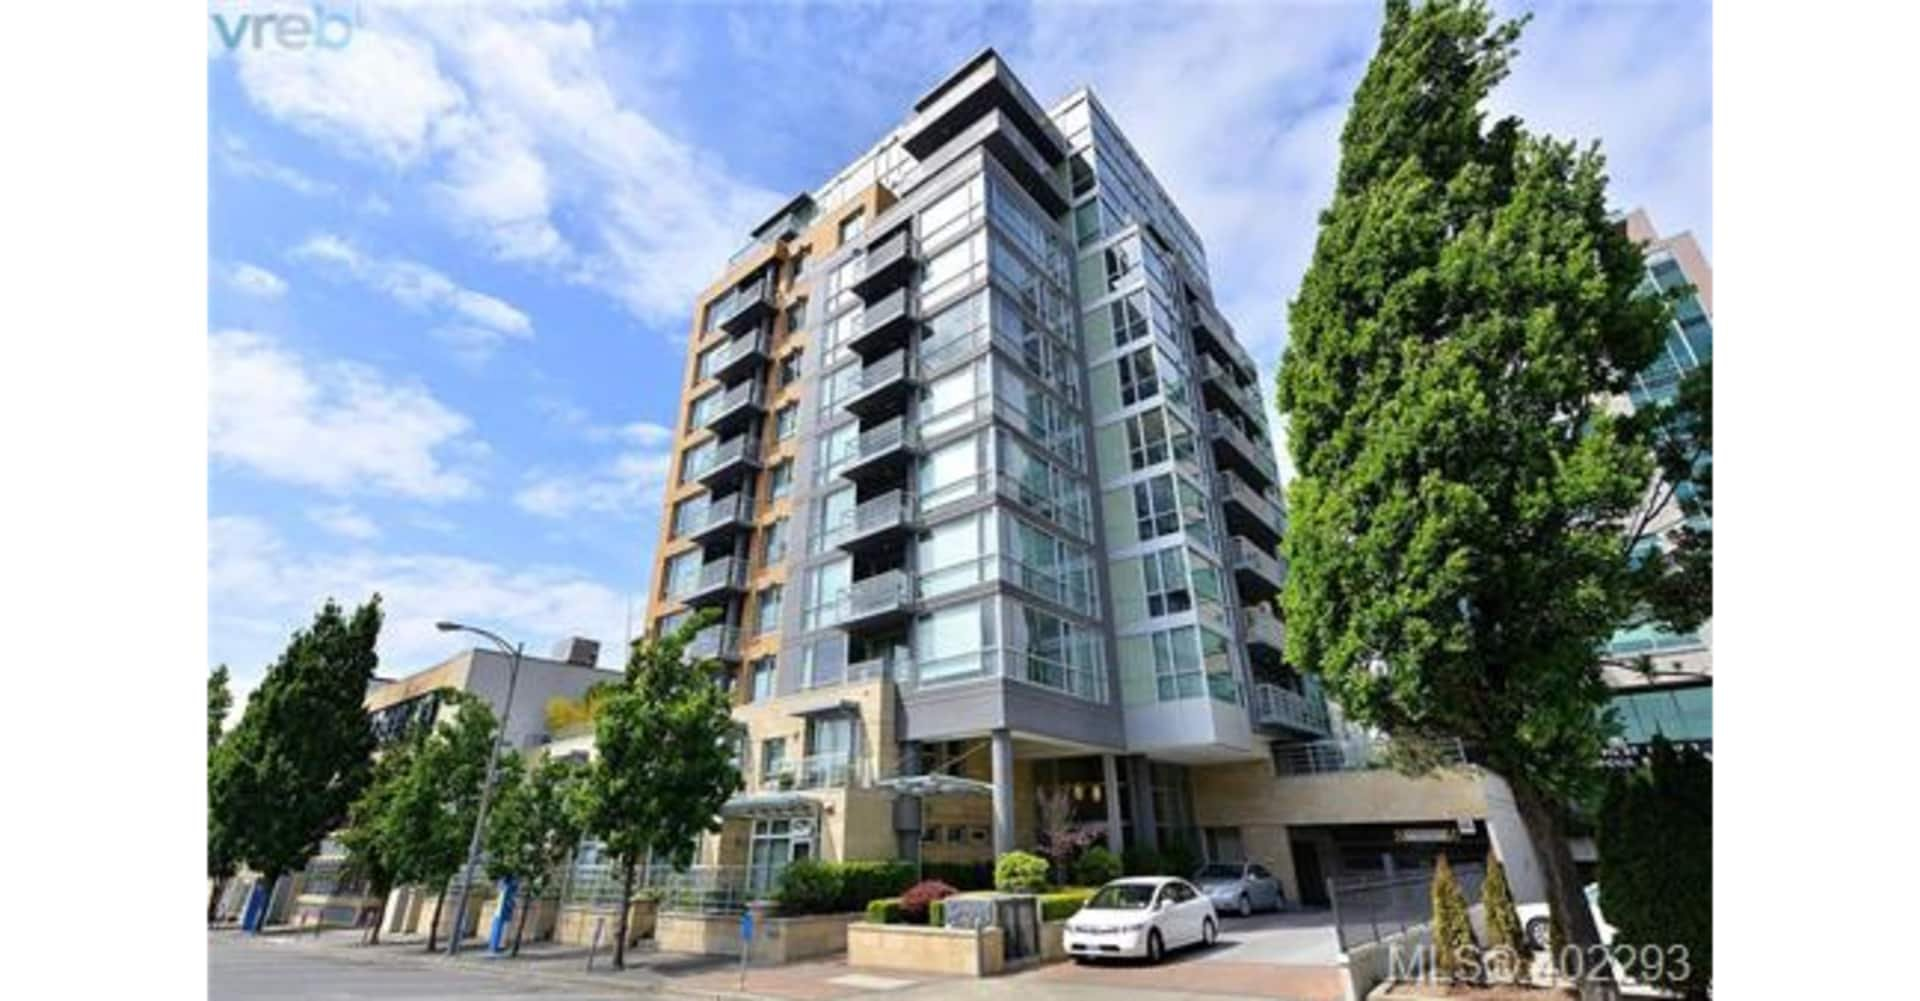 Main Photo: 307 732 Cormorant Street in Victoria: Condo for sale : MLS®# 402293